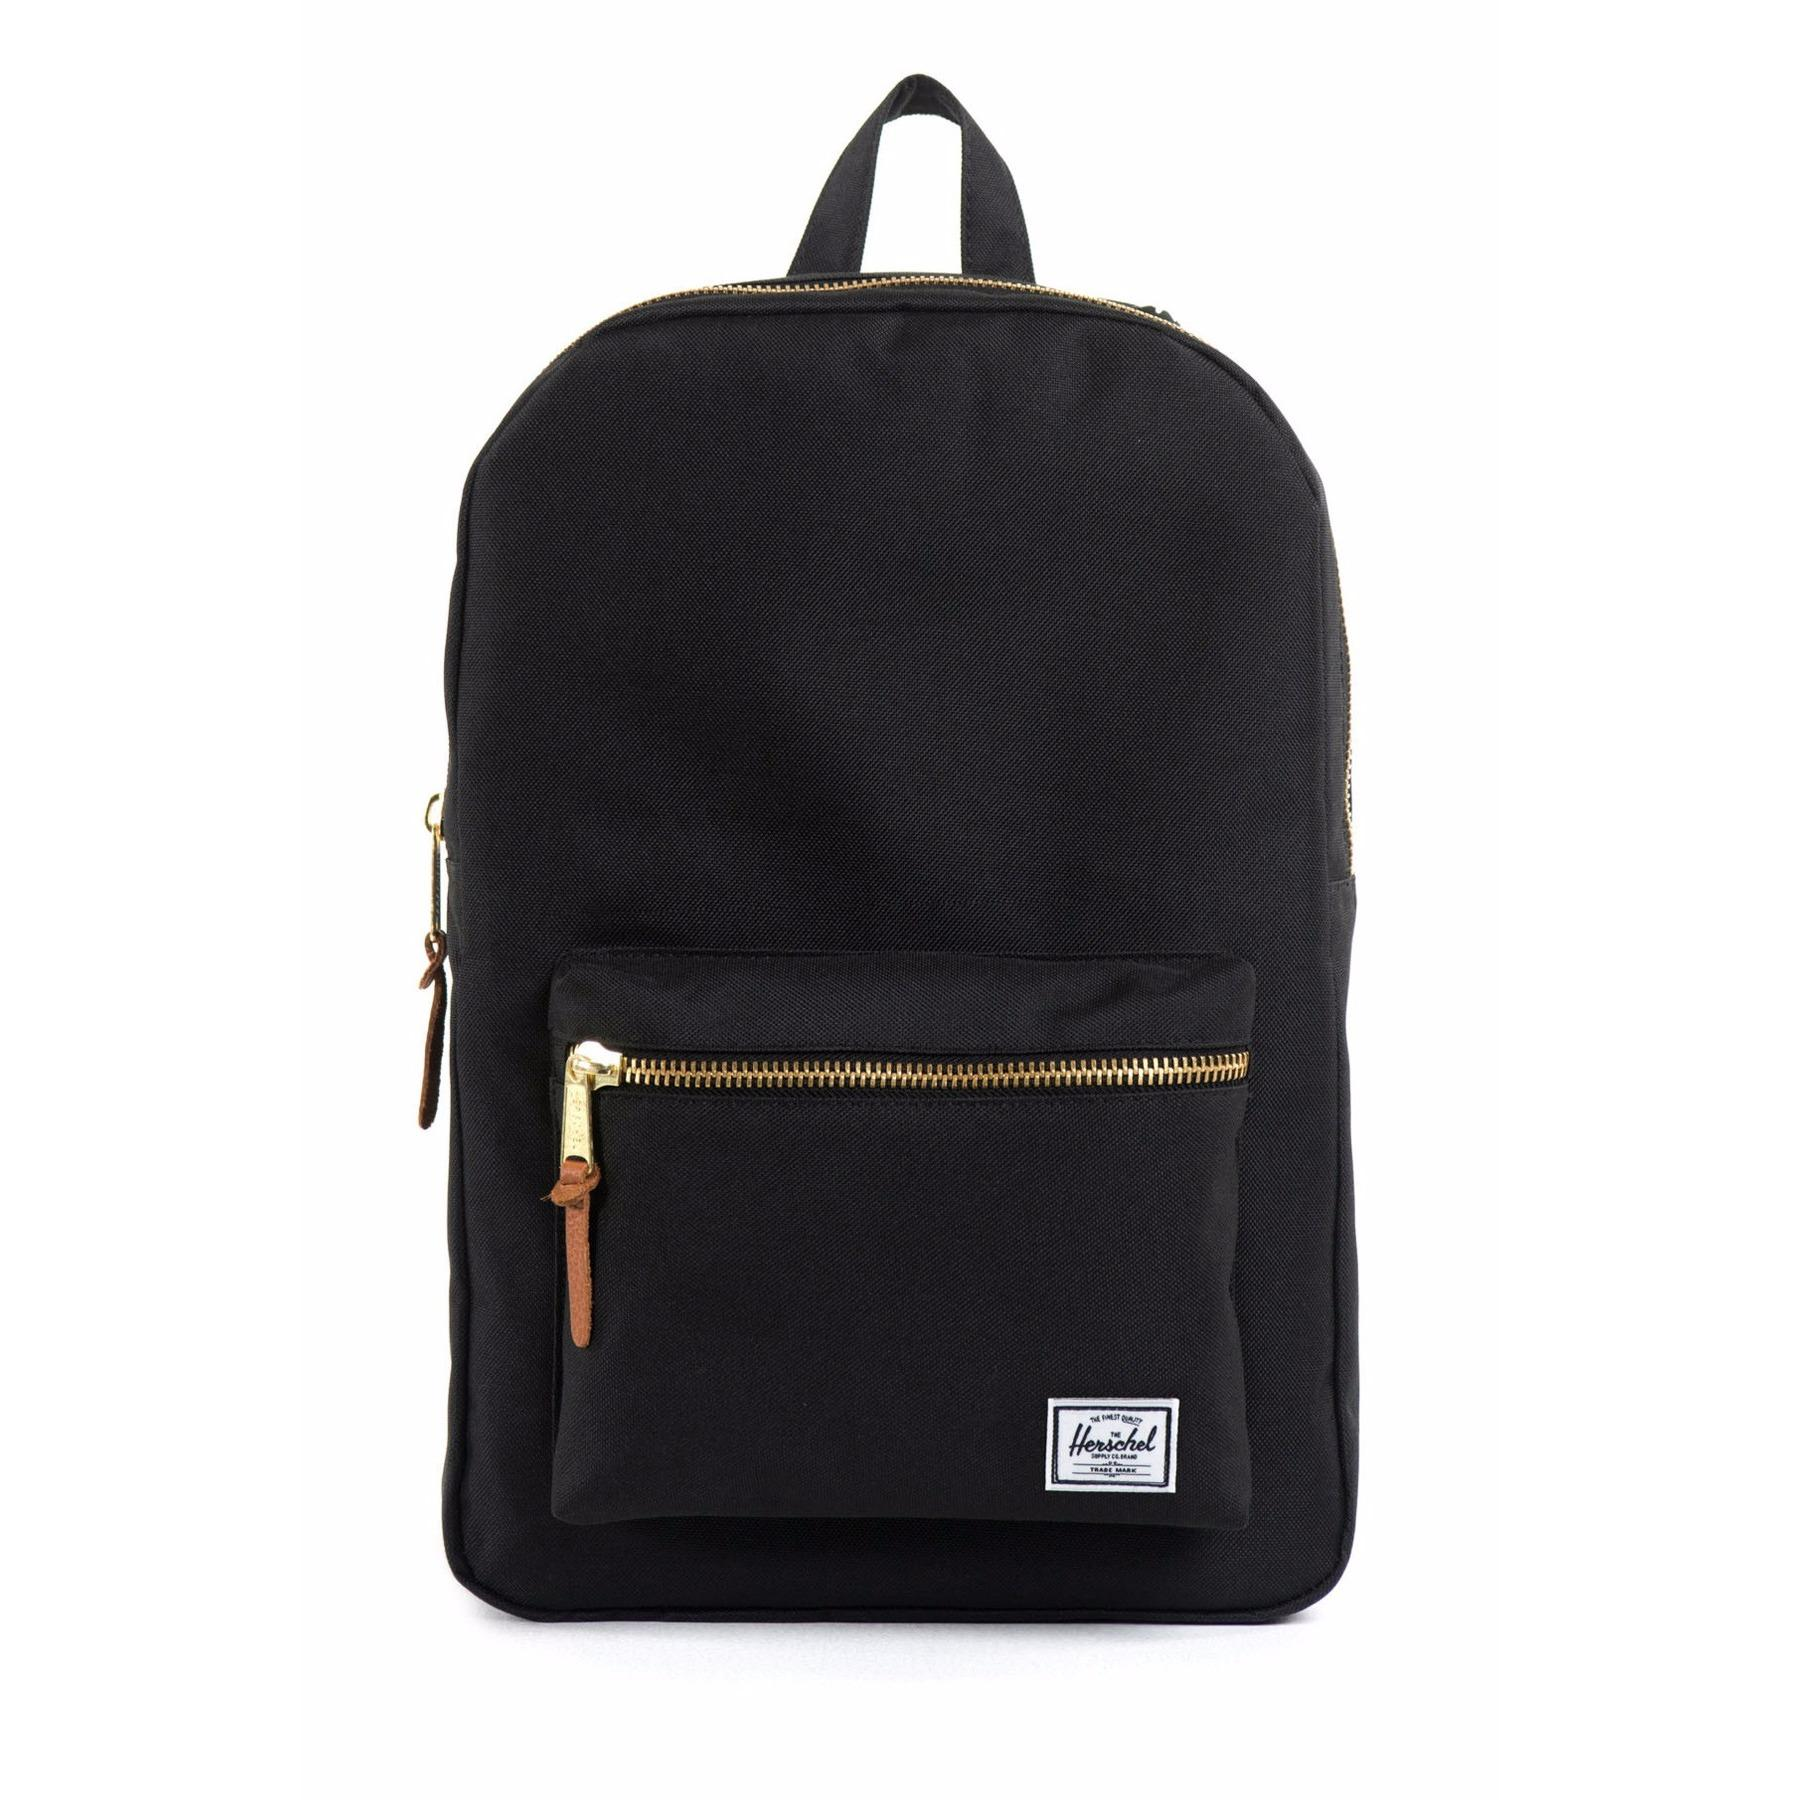 d11ec2e61c95 Herschel Supply Co. Settlement Backpack - Black